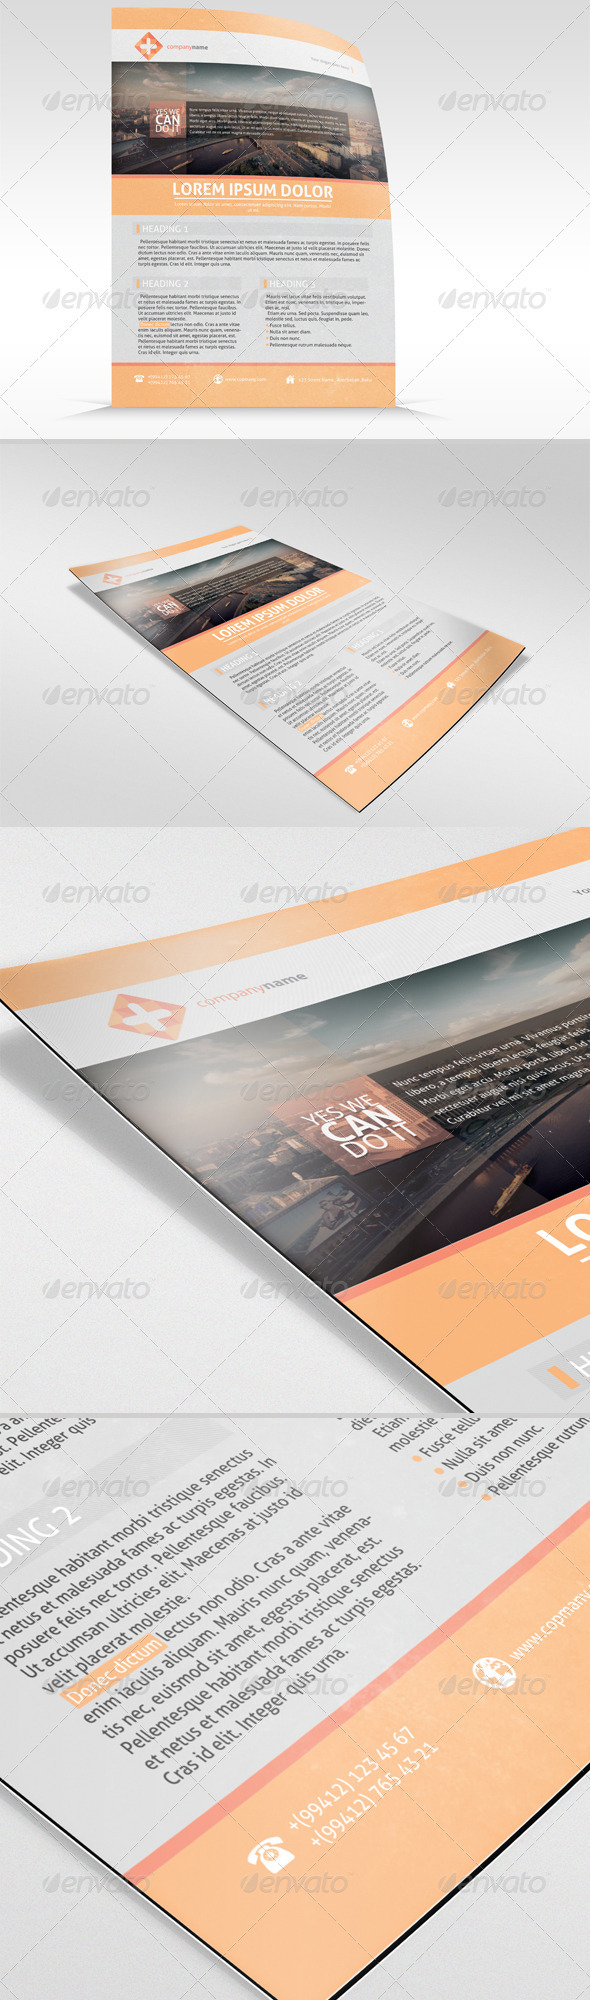 Sleek Corporate Flyer - Corporate Flyers